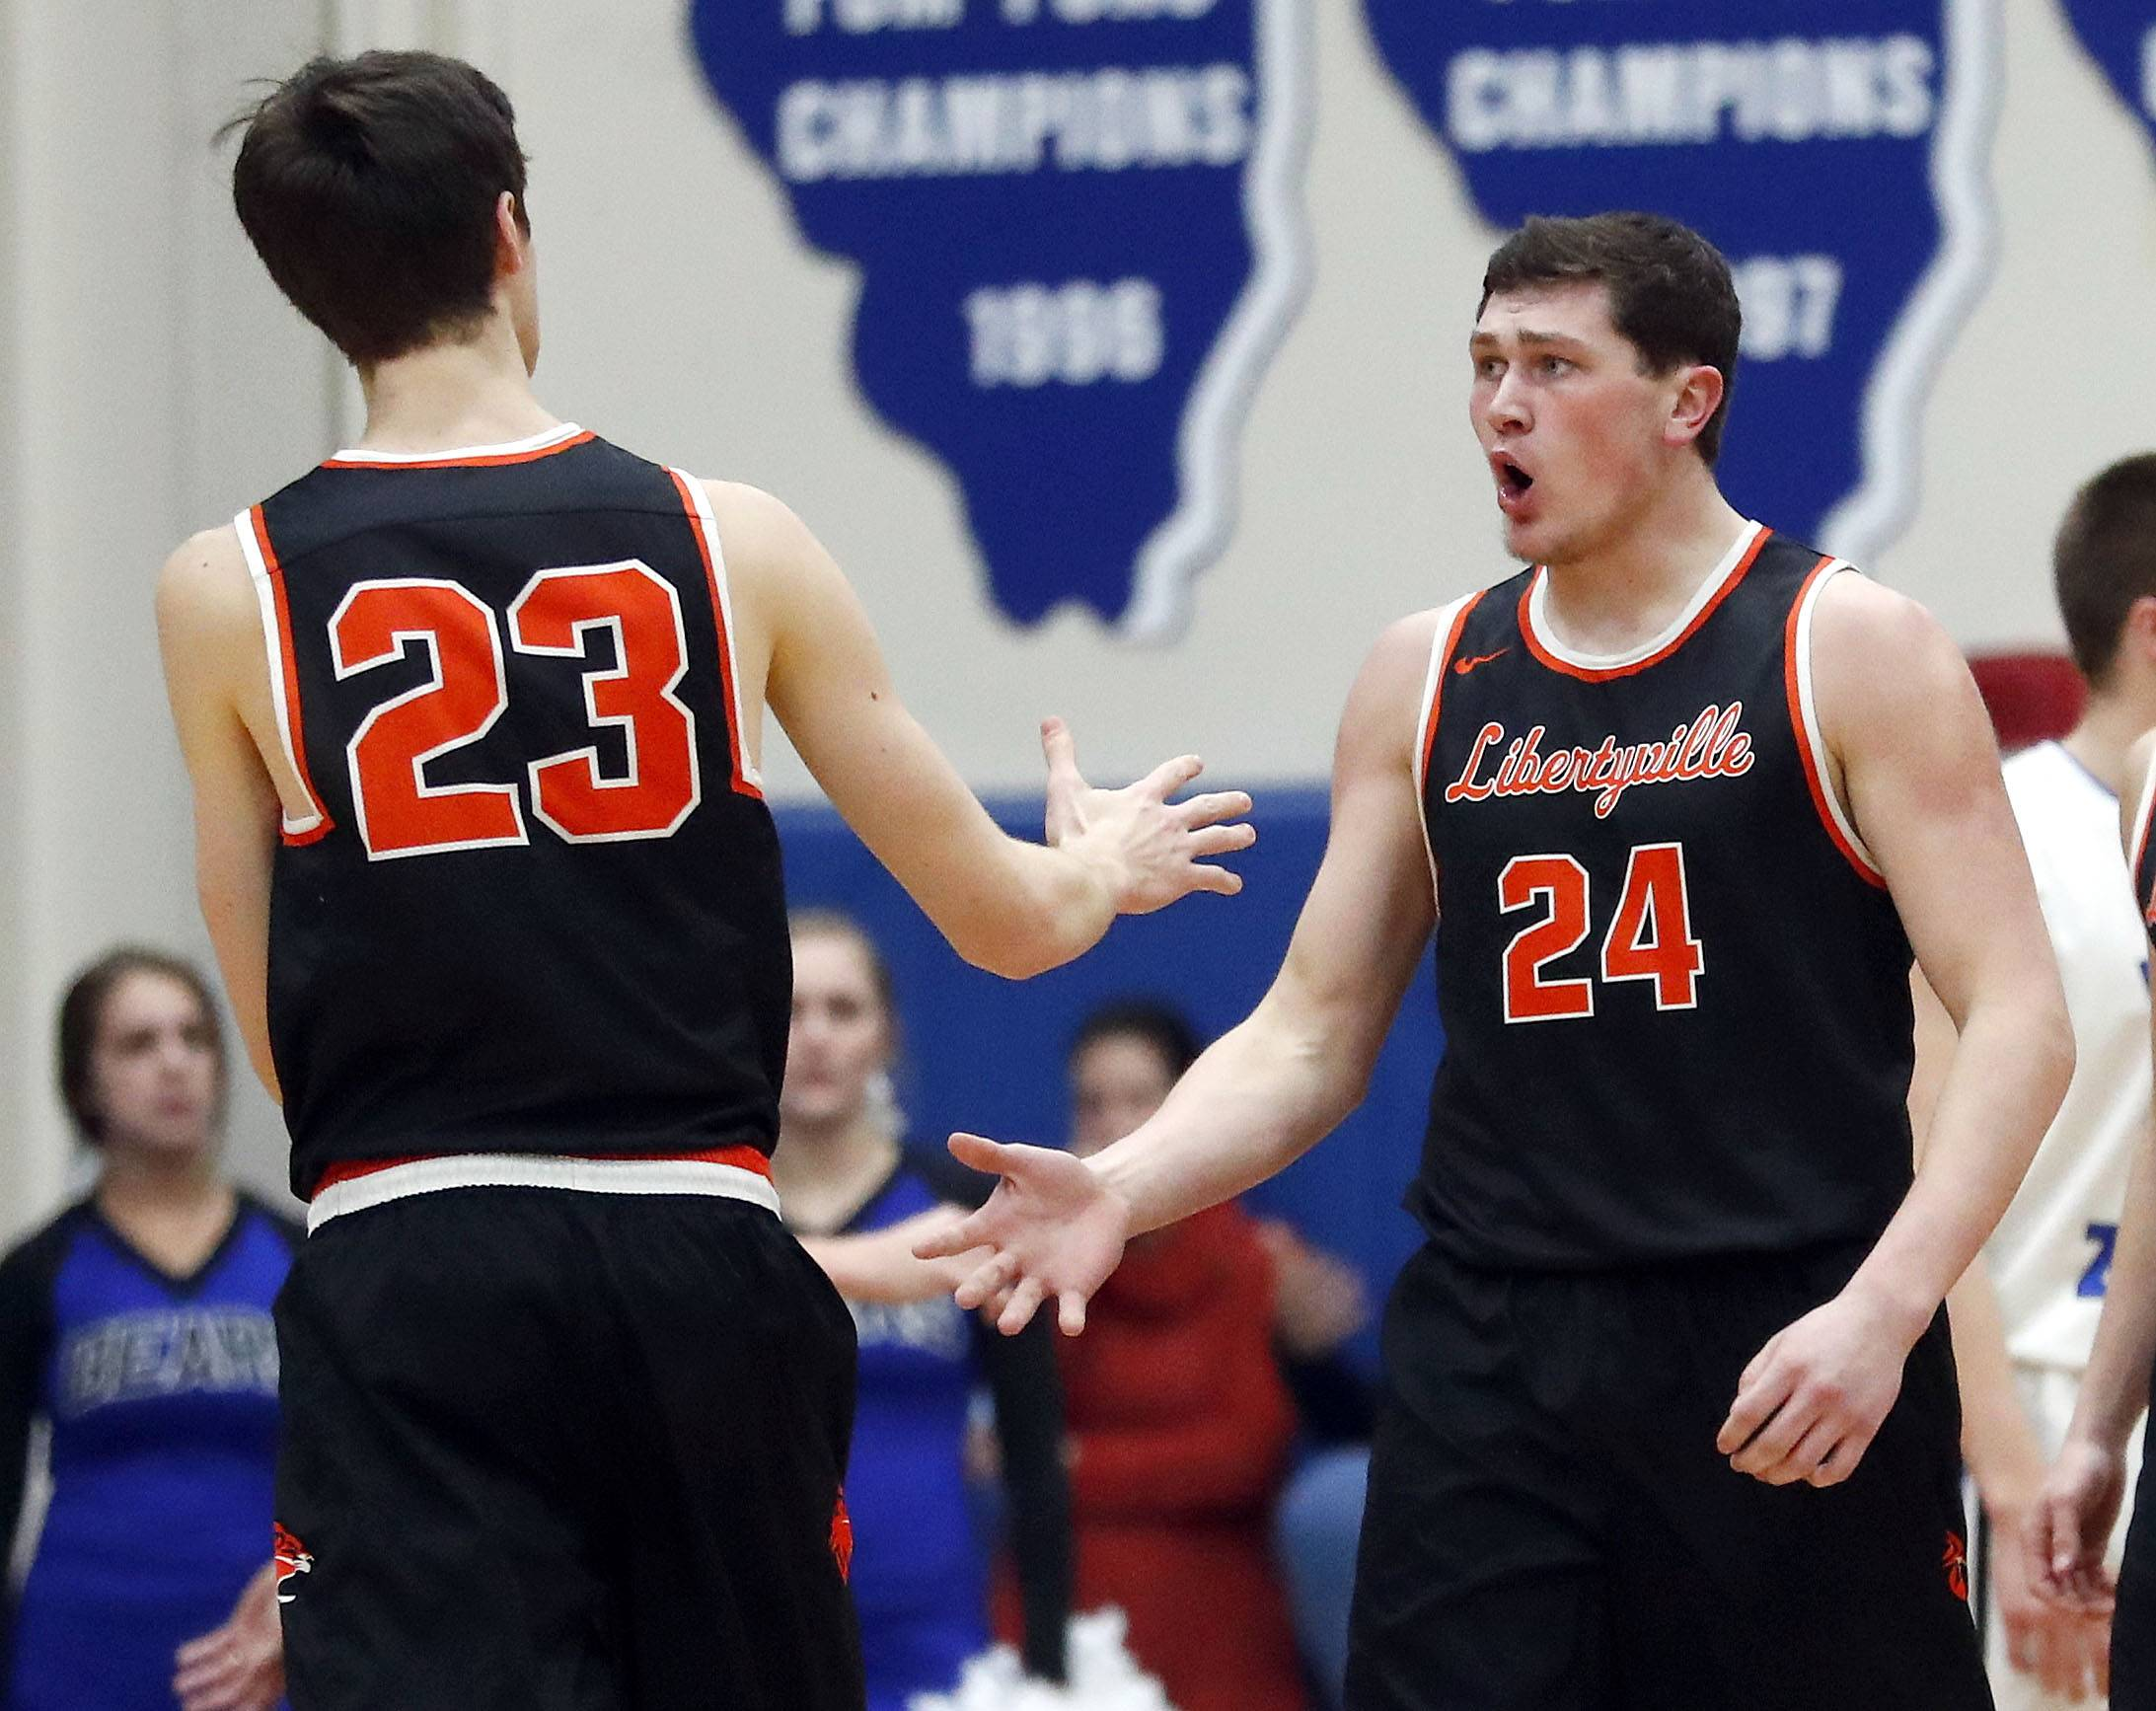 Libertyville's Brendan Cook celebrates with Libertyville's Drew Peterson (23) during the Class 4A sectional semifinal at Lake Zurich High School on Tuesday.